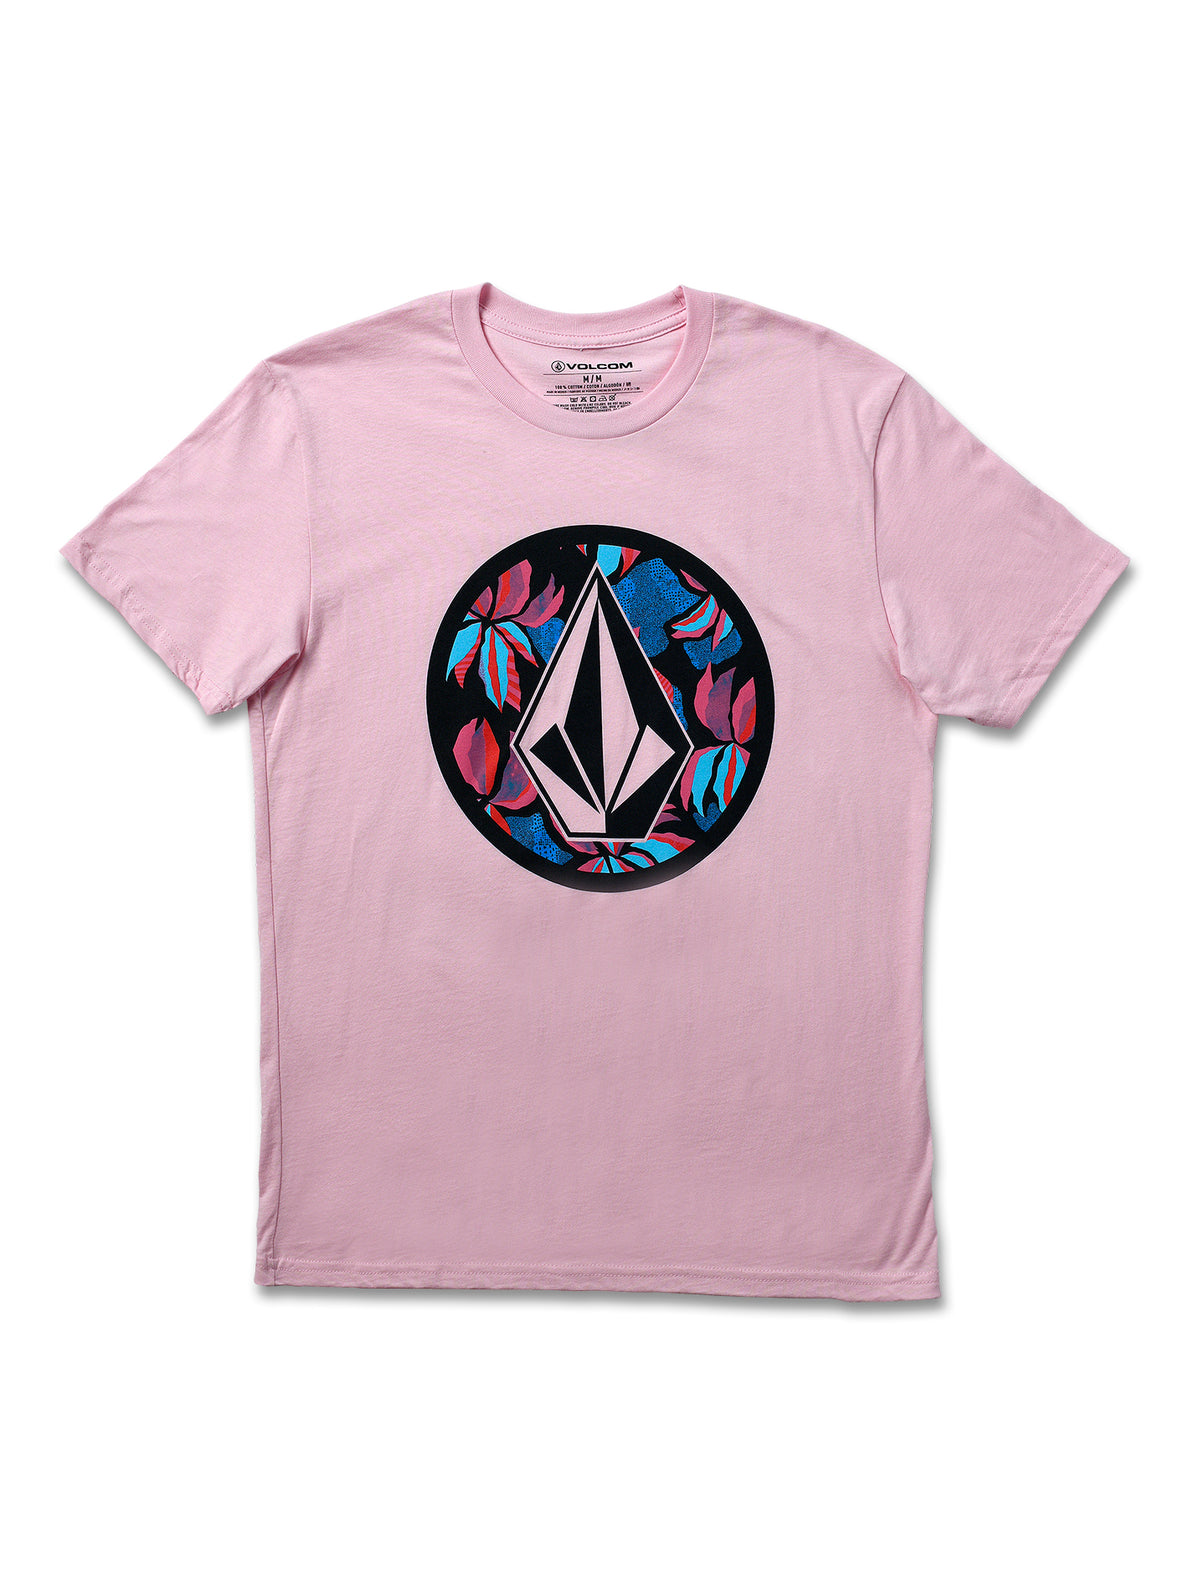 Sweet Repeat Short Sleeve Tee - Pink